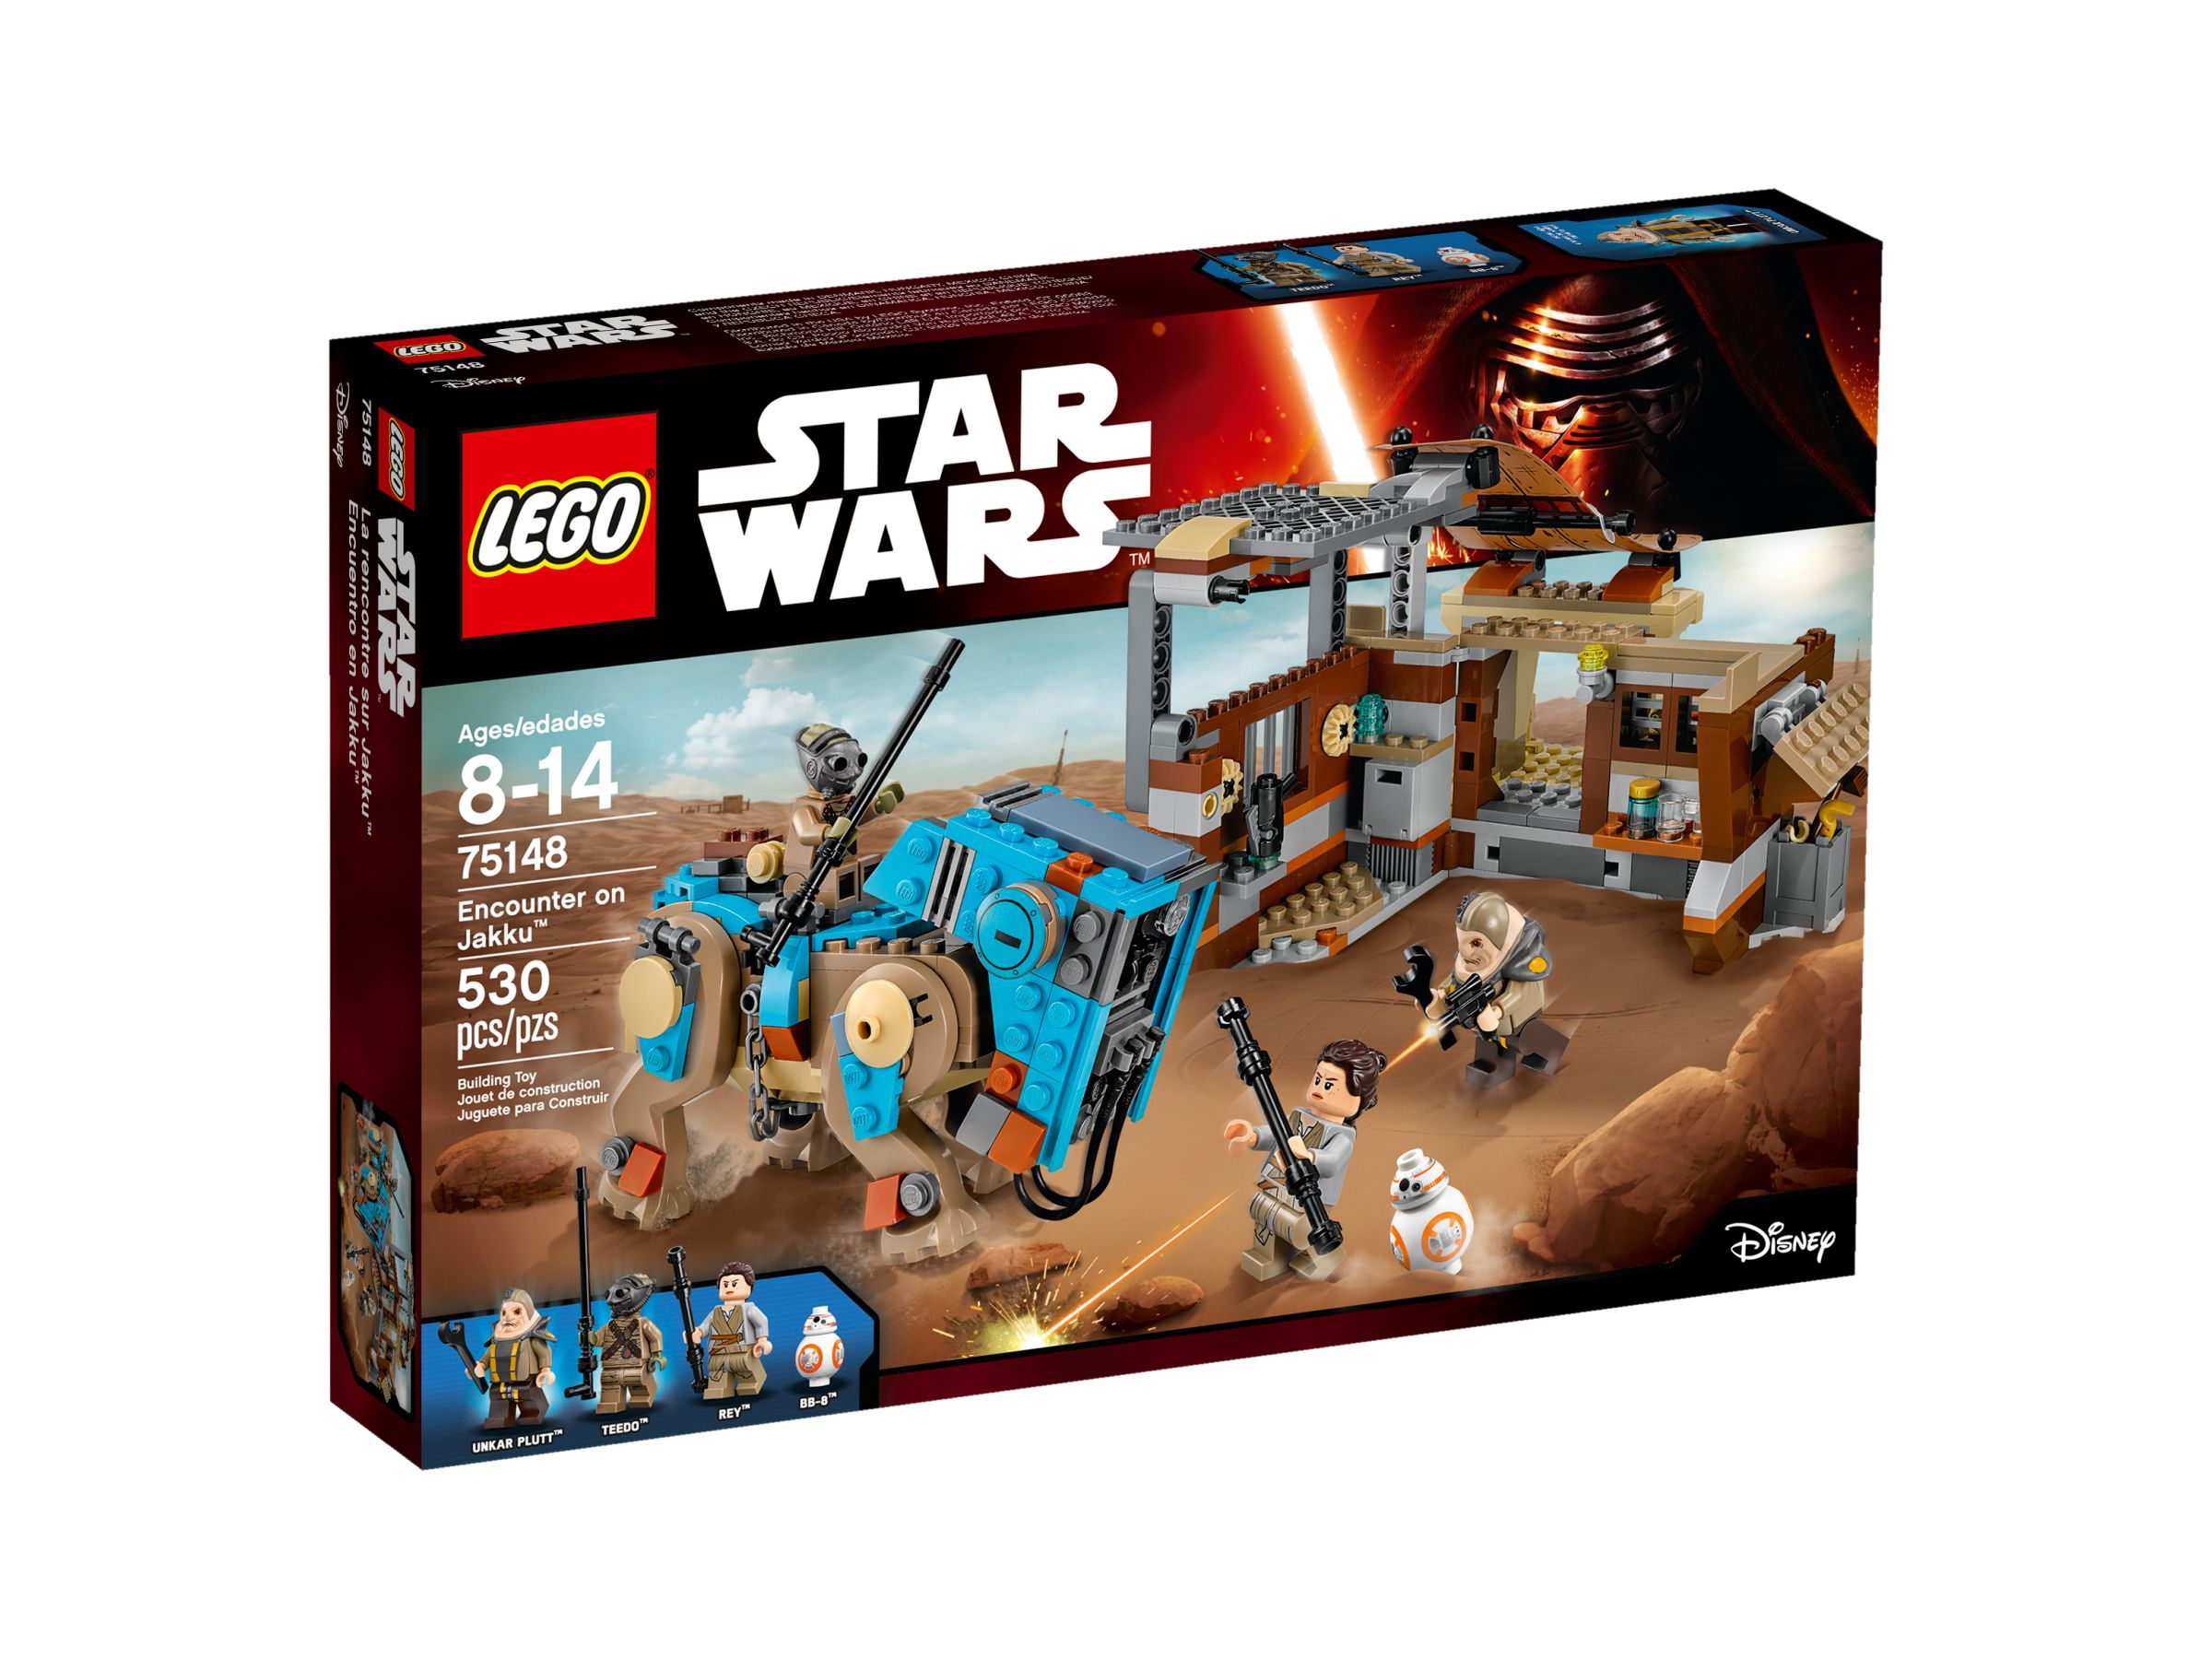 LEGO Star Wars 75148 Encounter on Jakku™ LEGO_75148_alt1.jpg